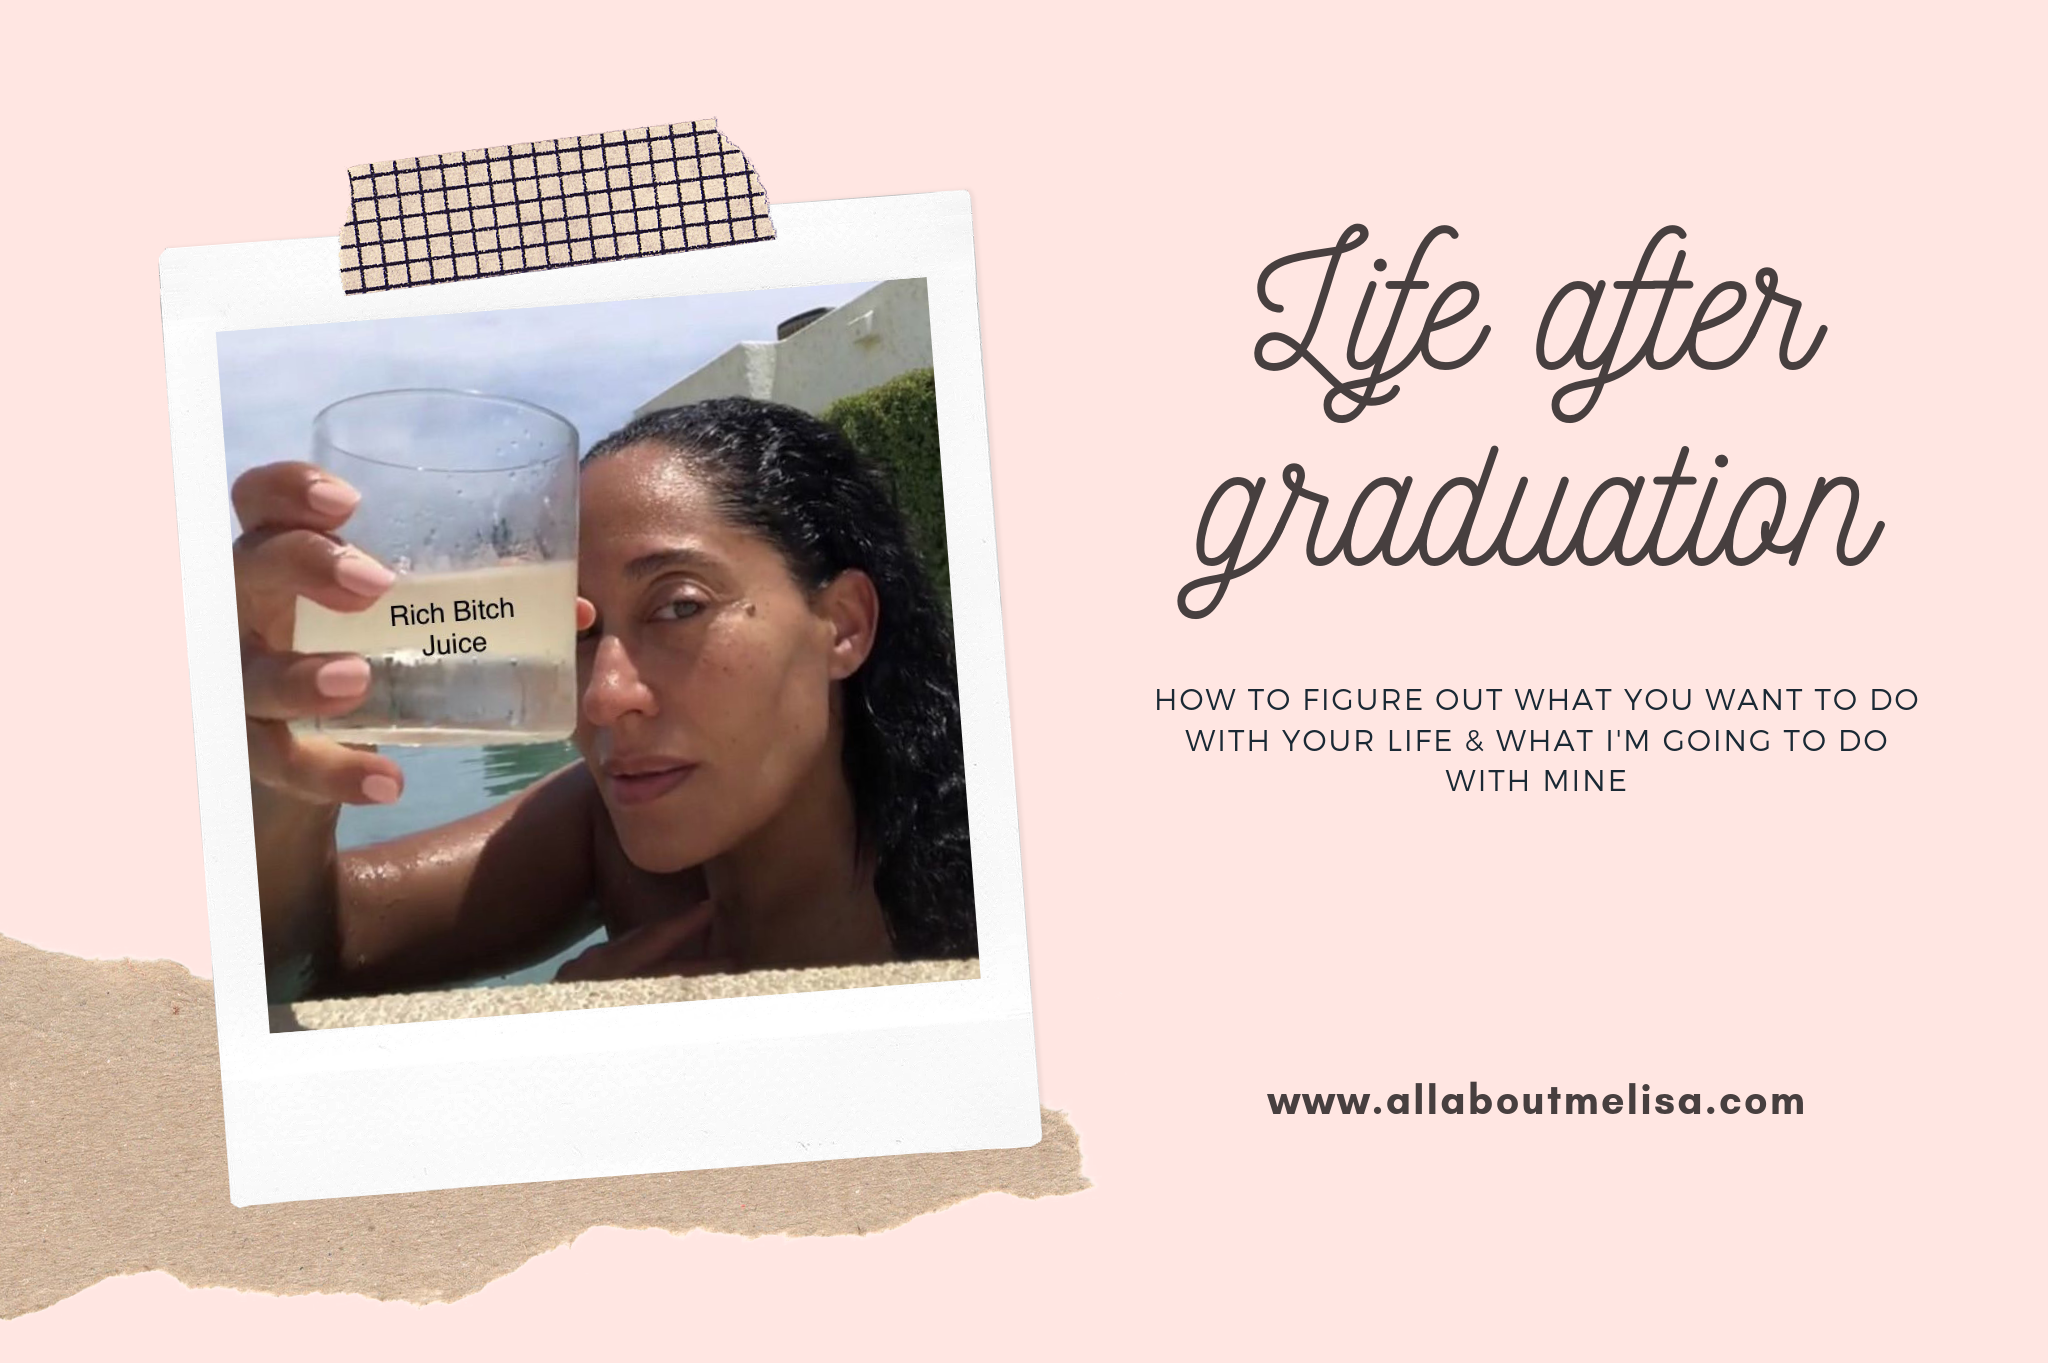 life after graduation how to figure out what to do with your life